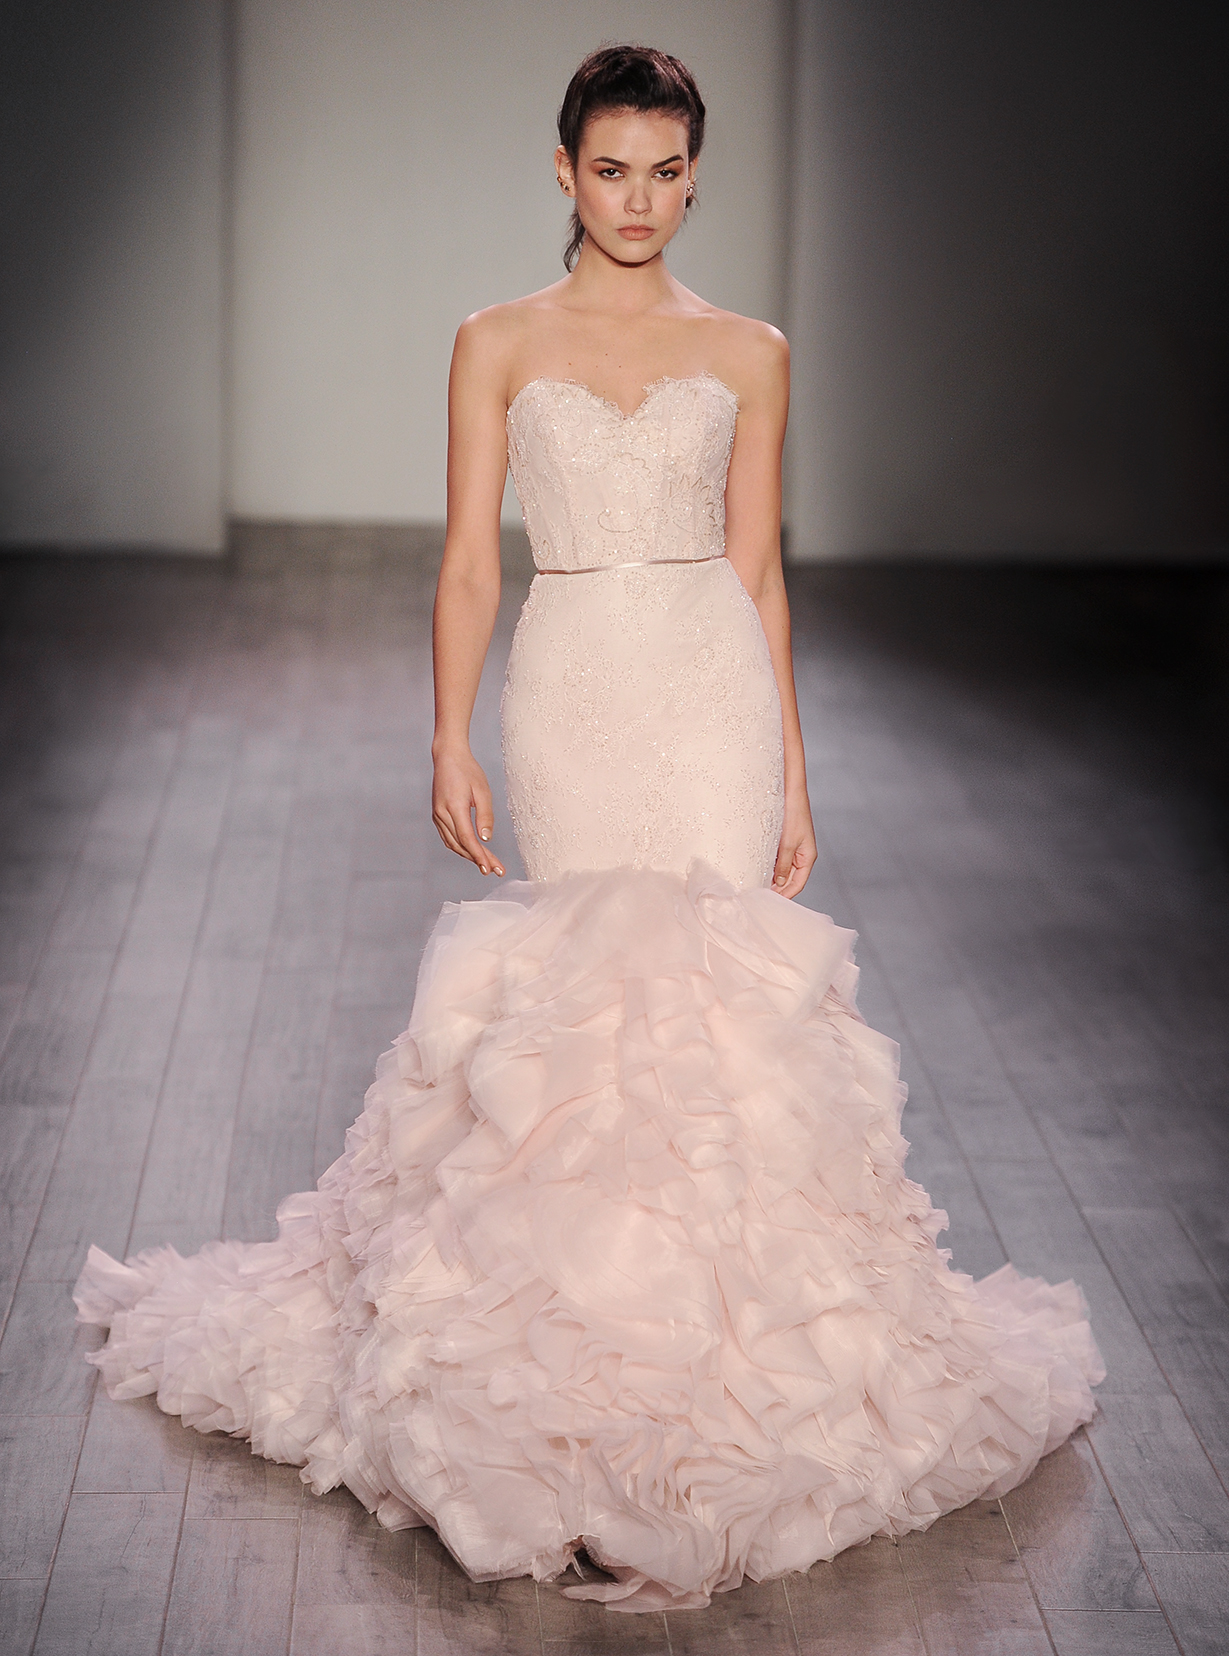 Bridal gowns and wedding dresses by jlm couture style 3612 for Where to buy lazaro wedding dresses